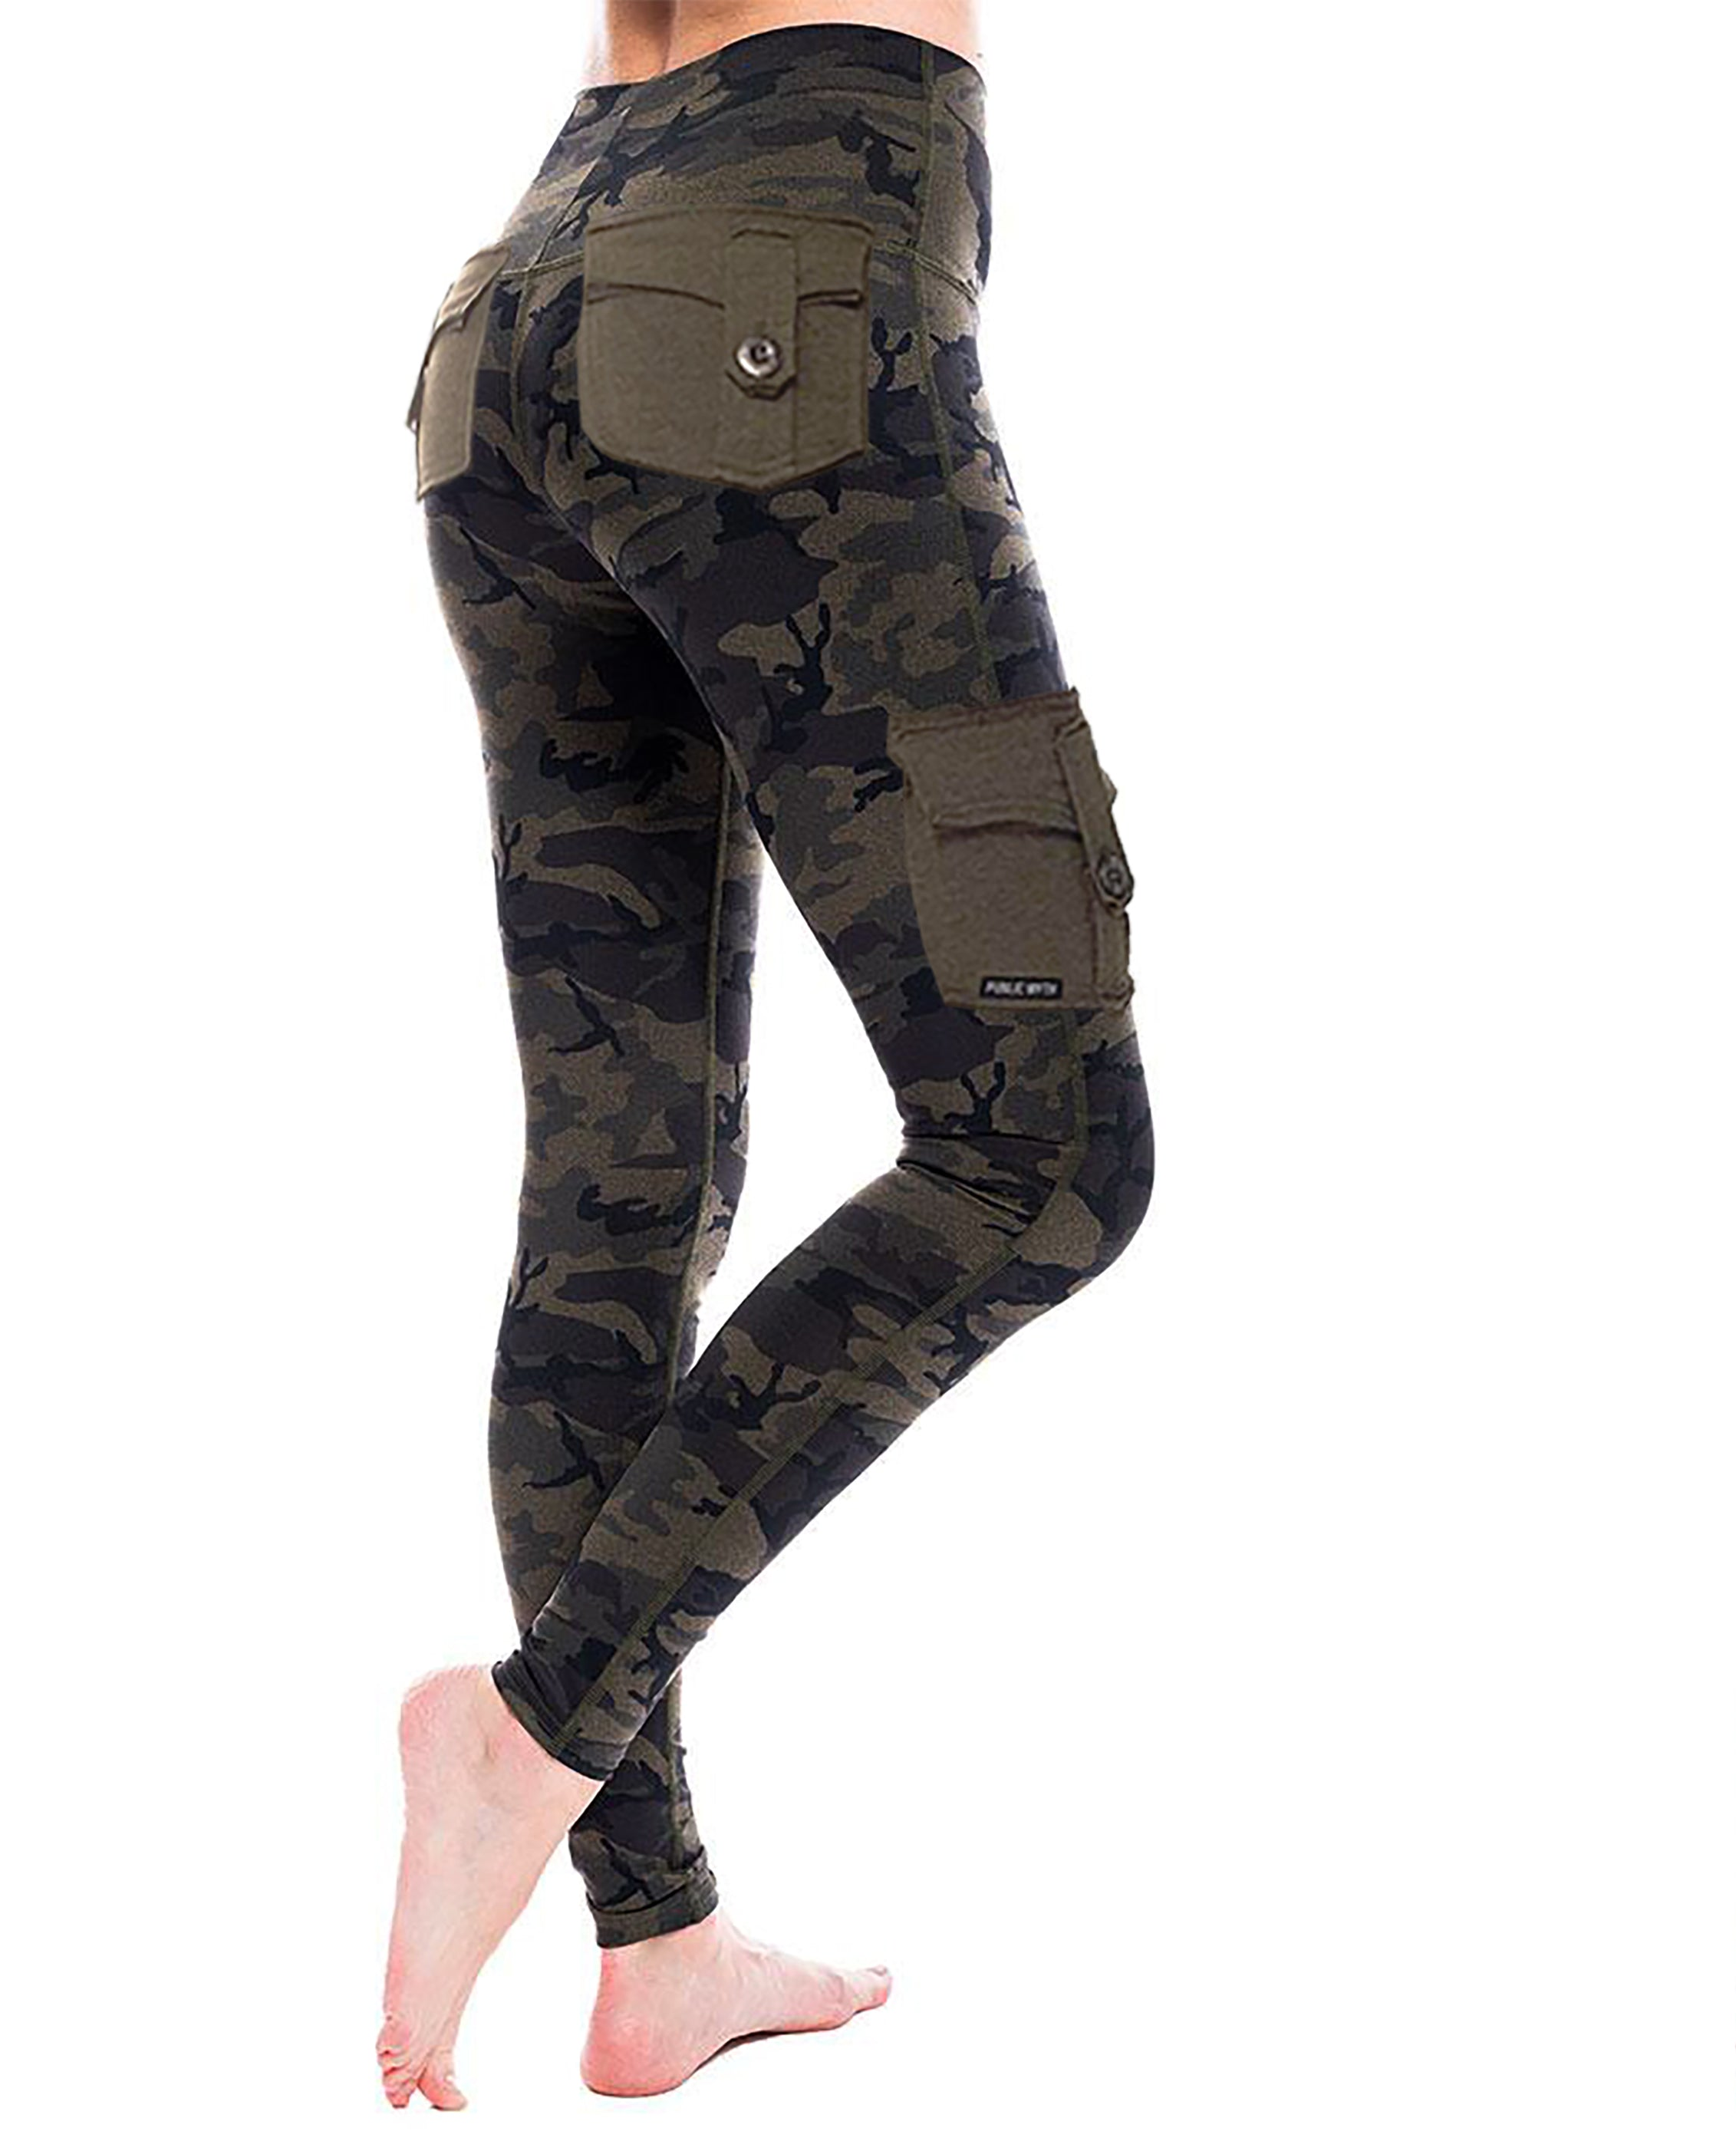 Women's solid color pocket camouflage pants yoga